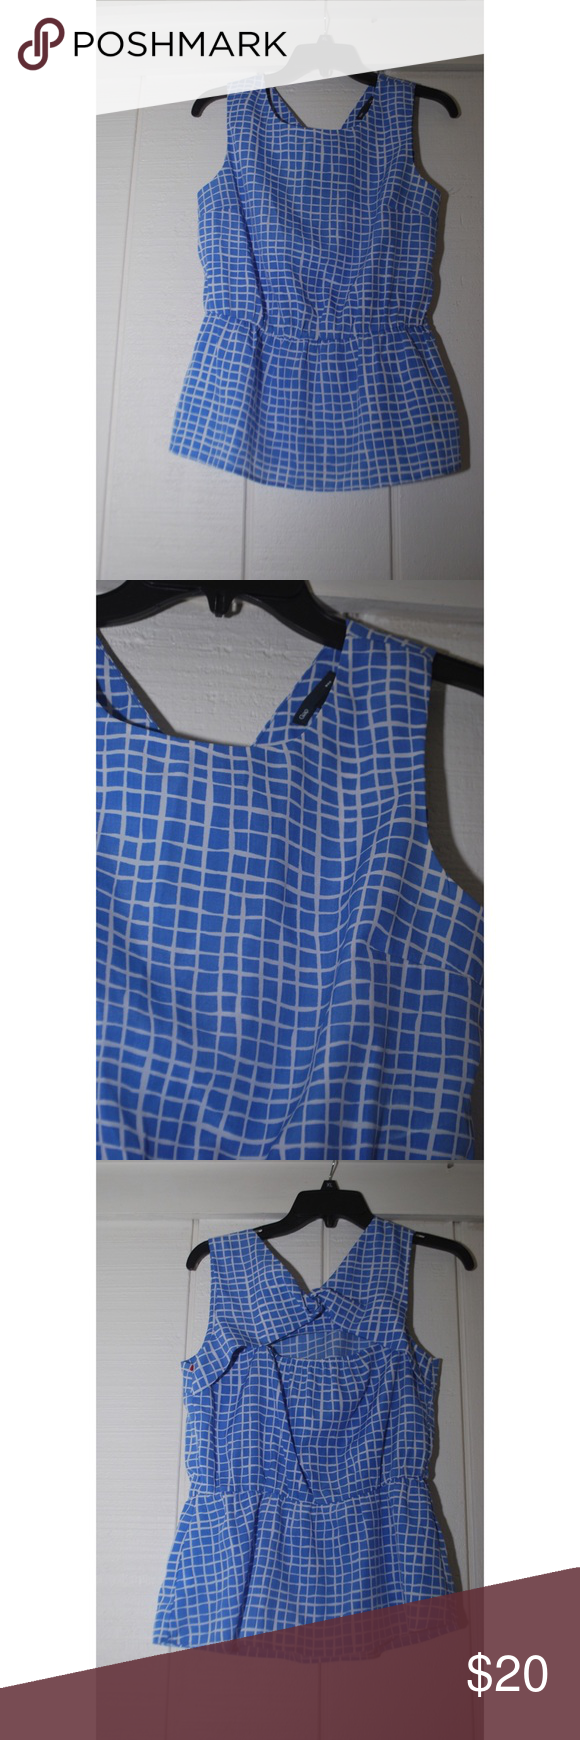 GAP Keyhole Cutout Silk-like Top Love the pattern of this blue and white gap top. It has never been worn, and has a cute key hole cut out detailing in the back. GAP Tops Tank Tops